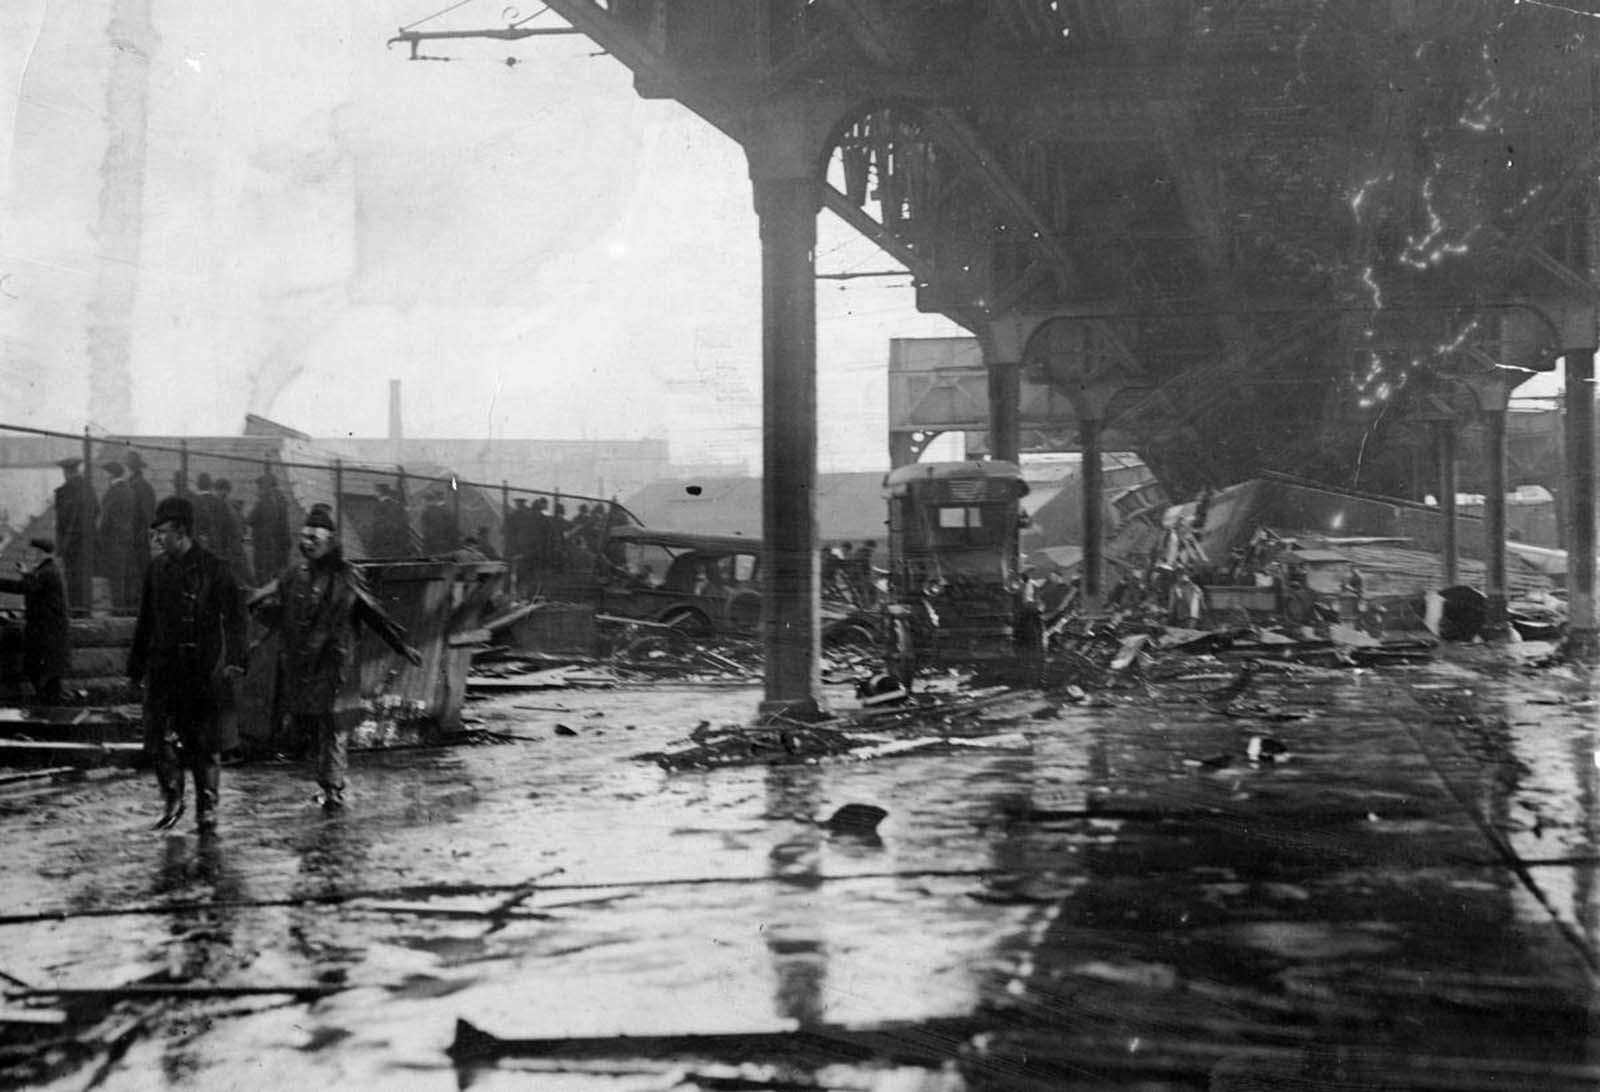 Debris, including smashed vehicles, lined Commercial Street the day of the collapse and flood. When the temperature plunged overnight, the dead became entombed in the hardened sugar.